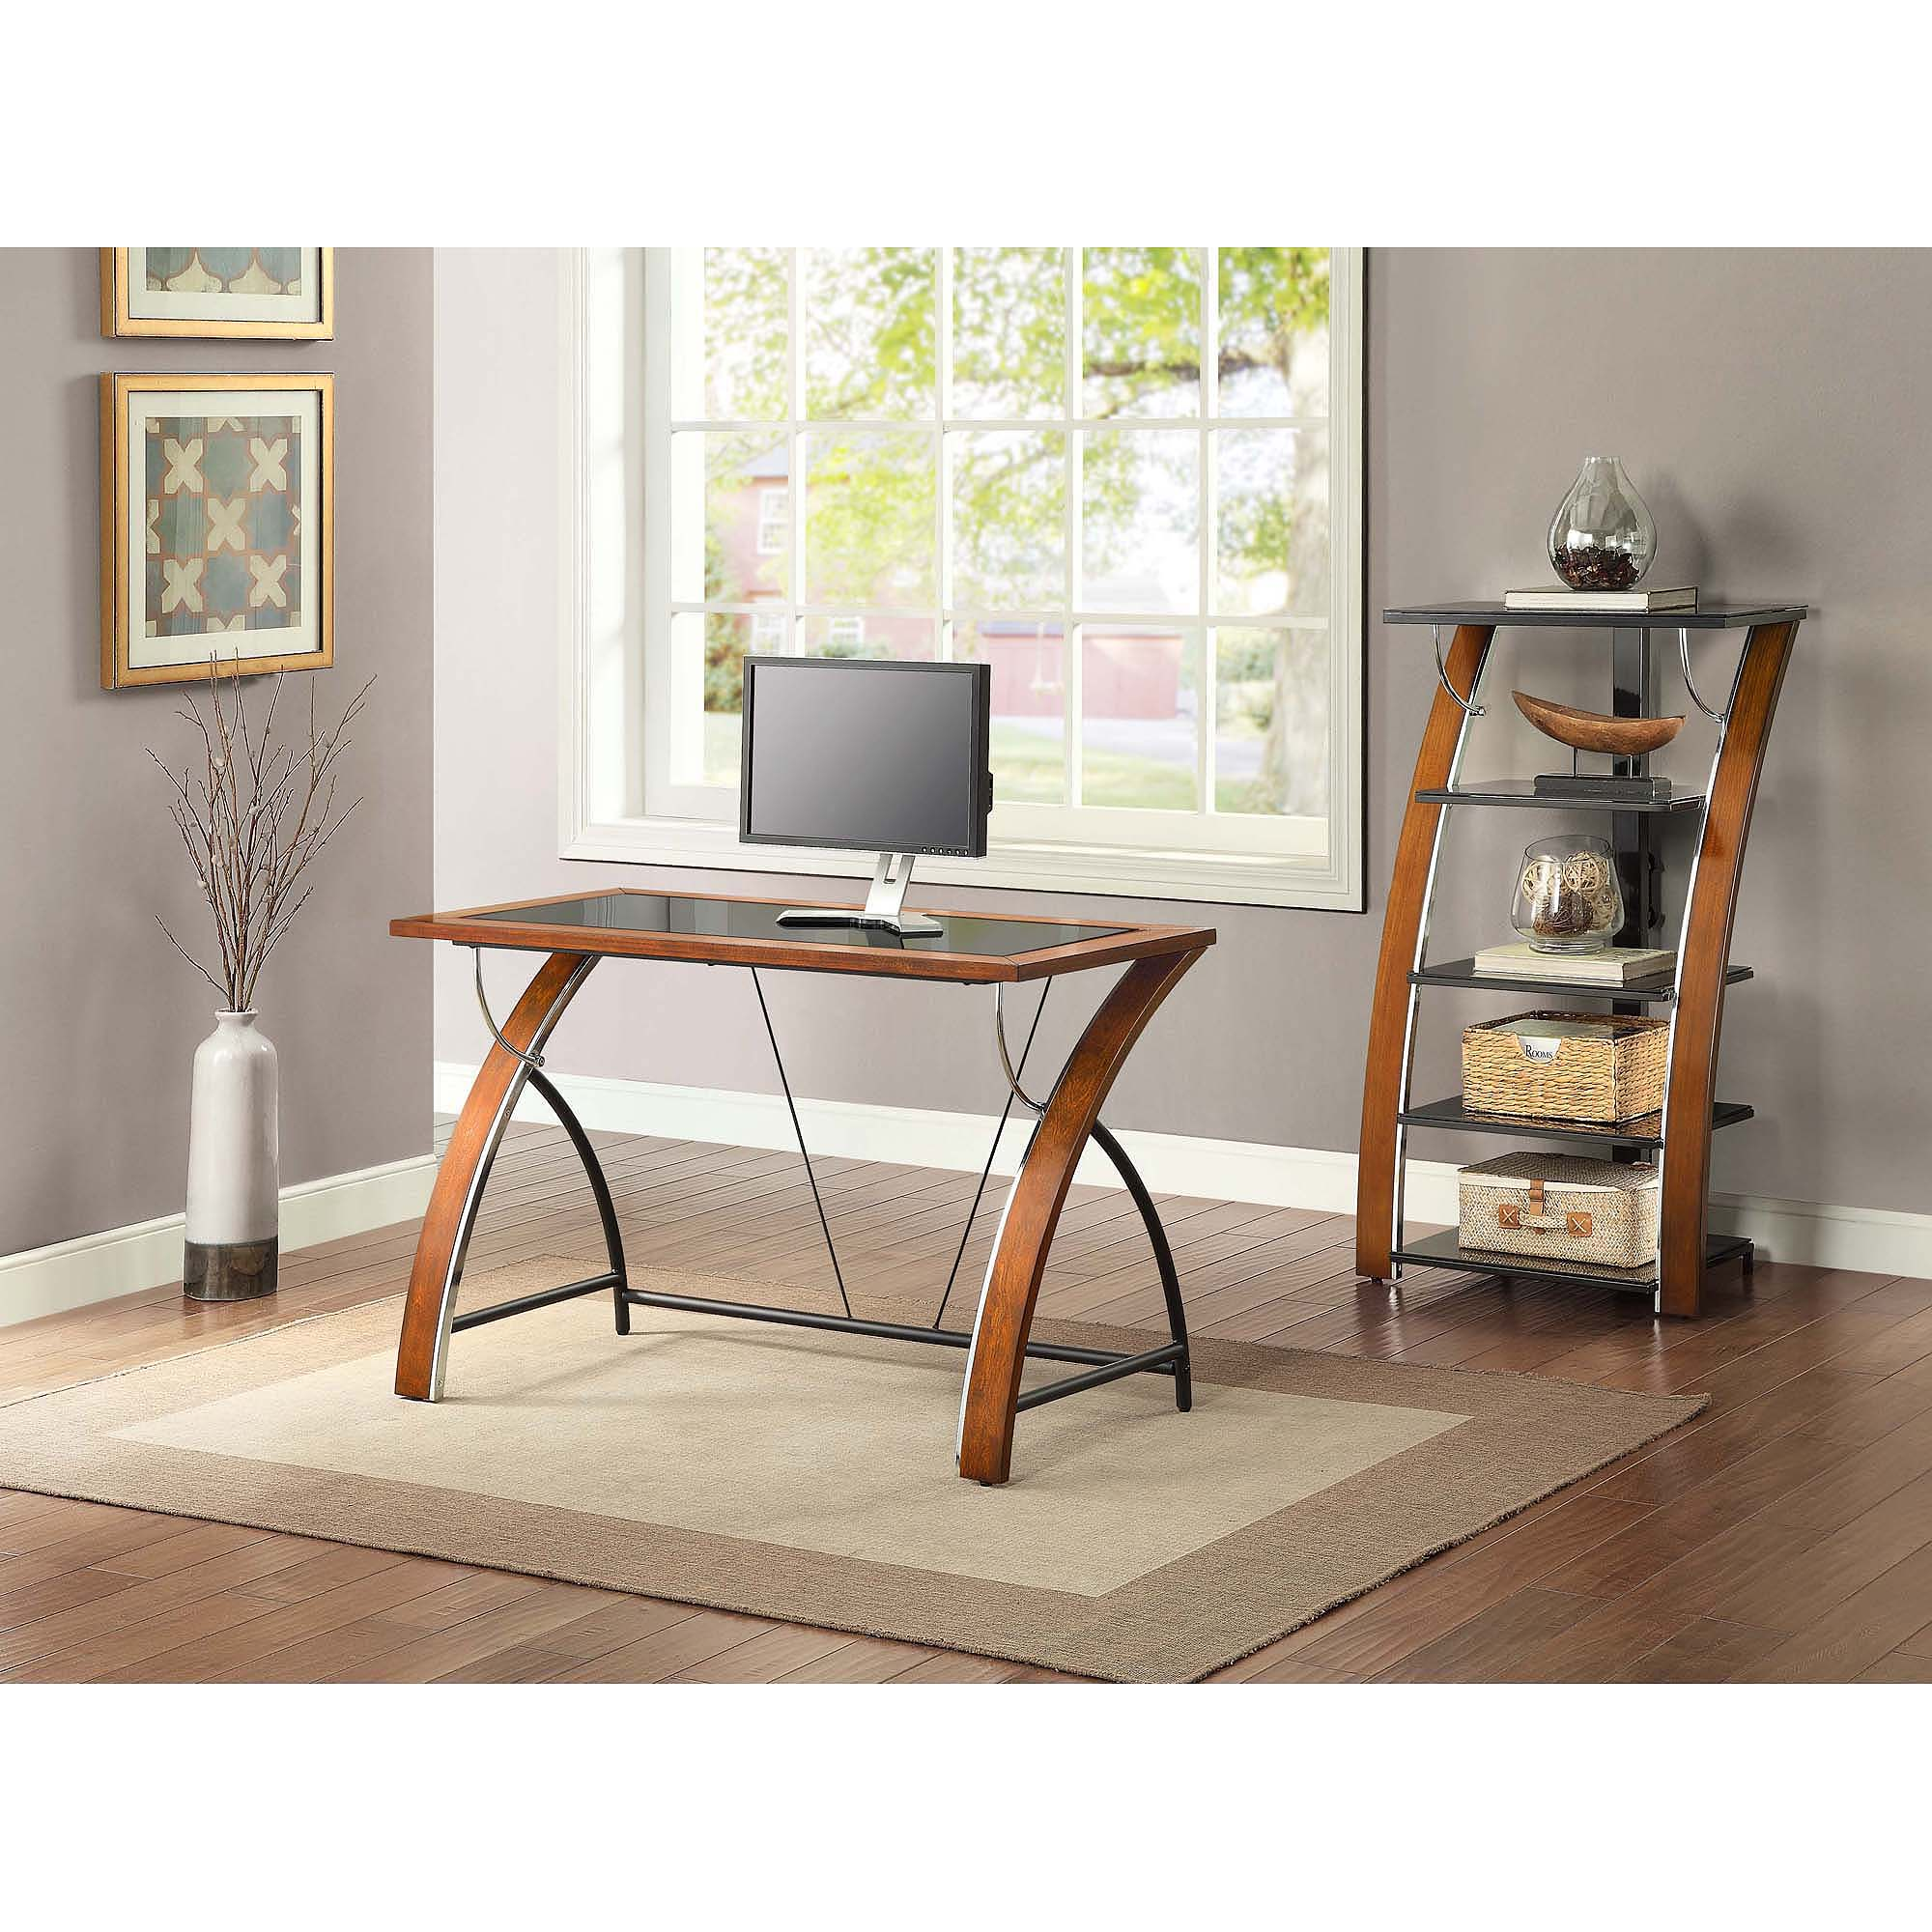 Whalen Furniture Montreal Laptop Desk Whalen Furniture